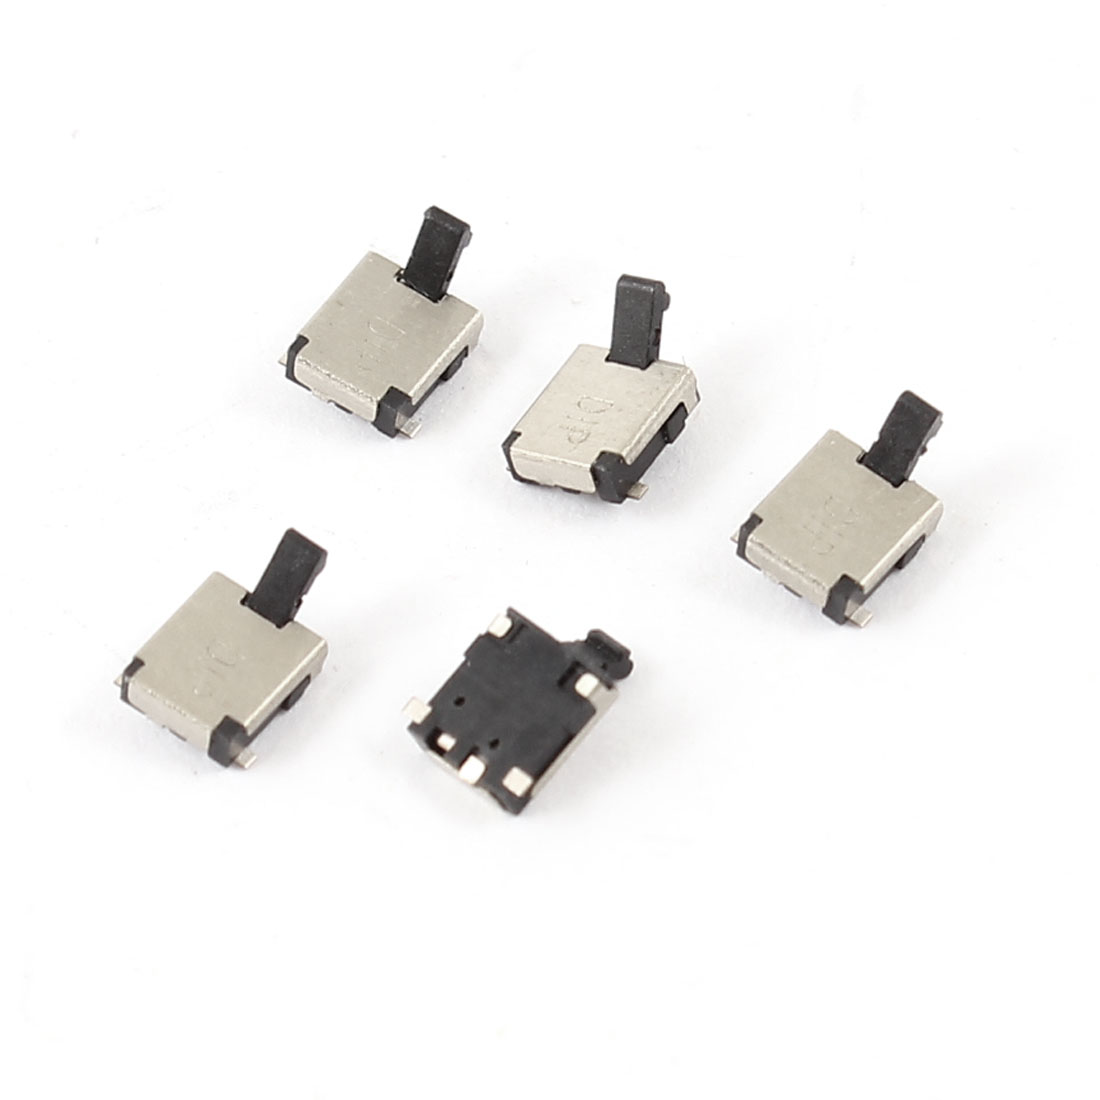 5pcs Momentary Contact SPST 4 Pins Miniature Switch for Camera Shutter Key